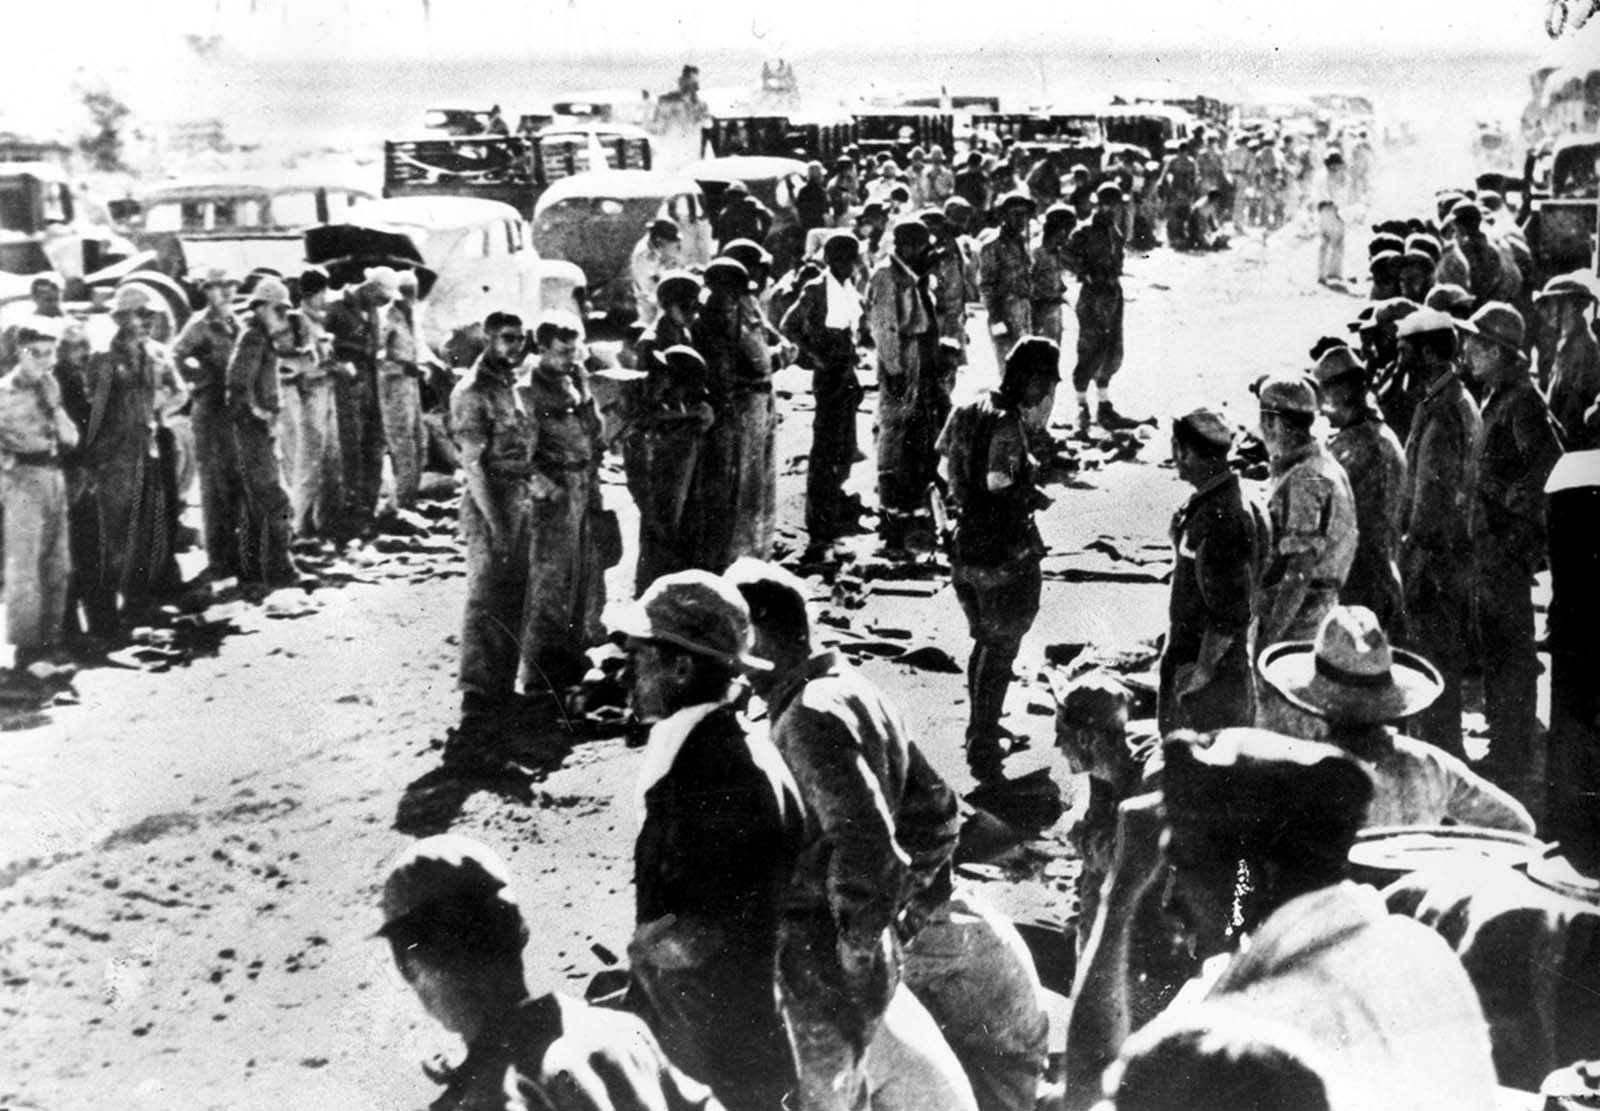 American soldiers line up as they surrender their arms to the Japanese at the naval base of Mariveles on Bataan Peninsula in the Philippines in April of 1942.